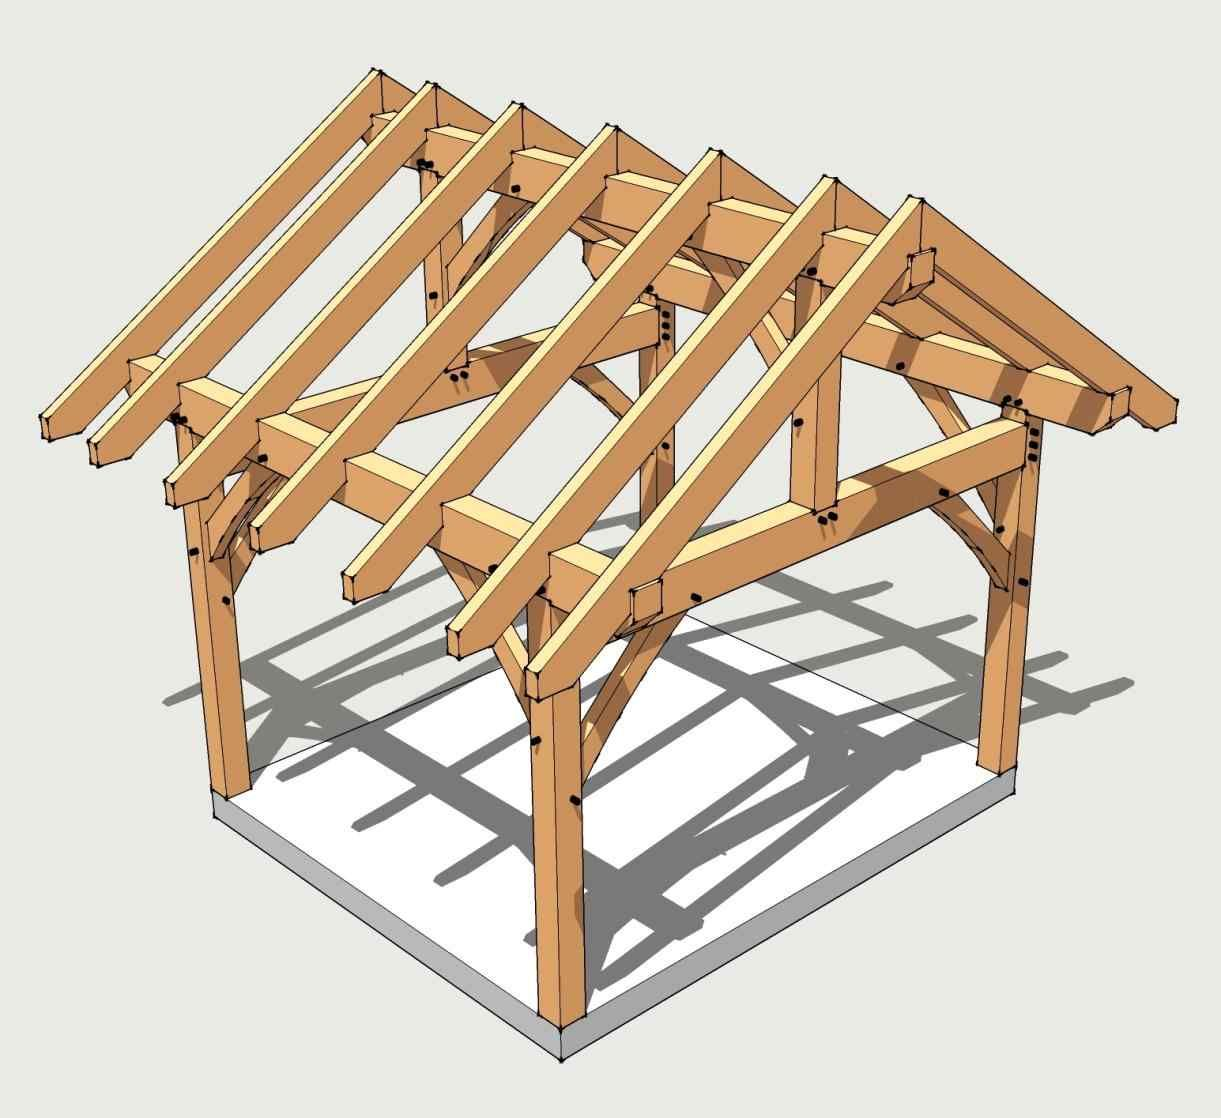 Roofing Shed Roof Framing Simple Truss Roofing Shed Roof Truss Design Shed Roof Framing Simple Timber Frame Plans Timber Frame Construction Timber Frame Homes